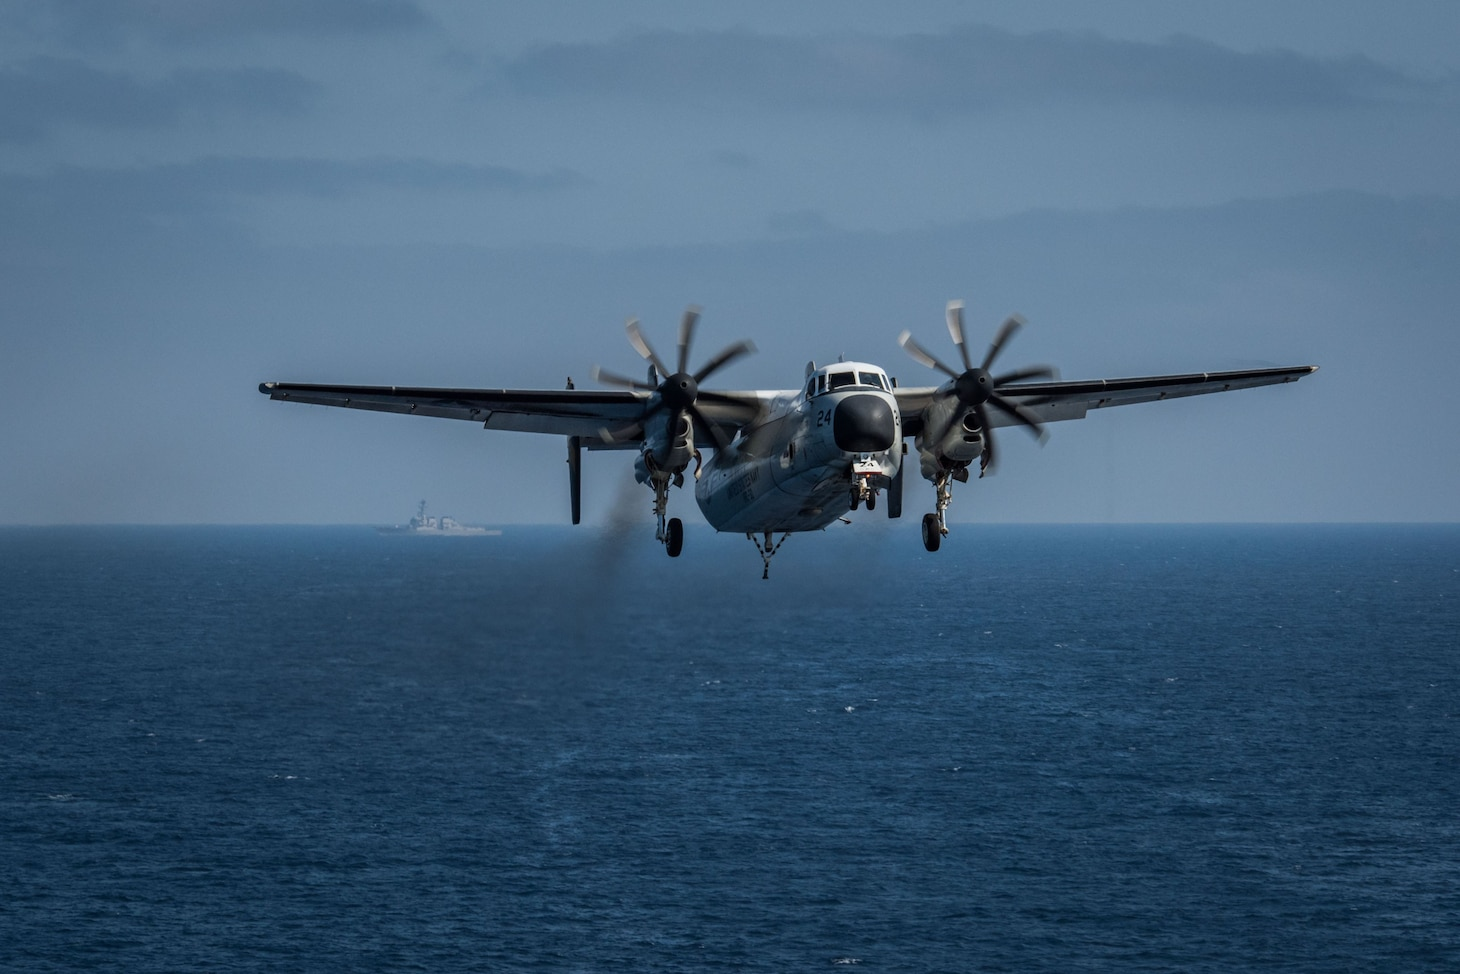 Official U.S. Navy file photo of a C-2A Greyhound.